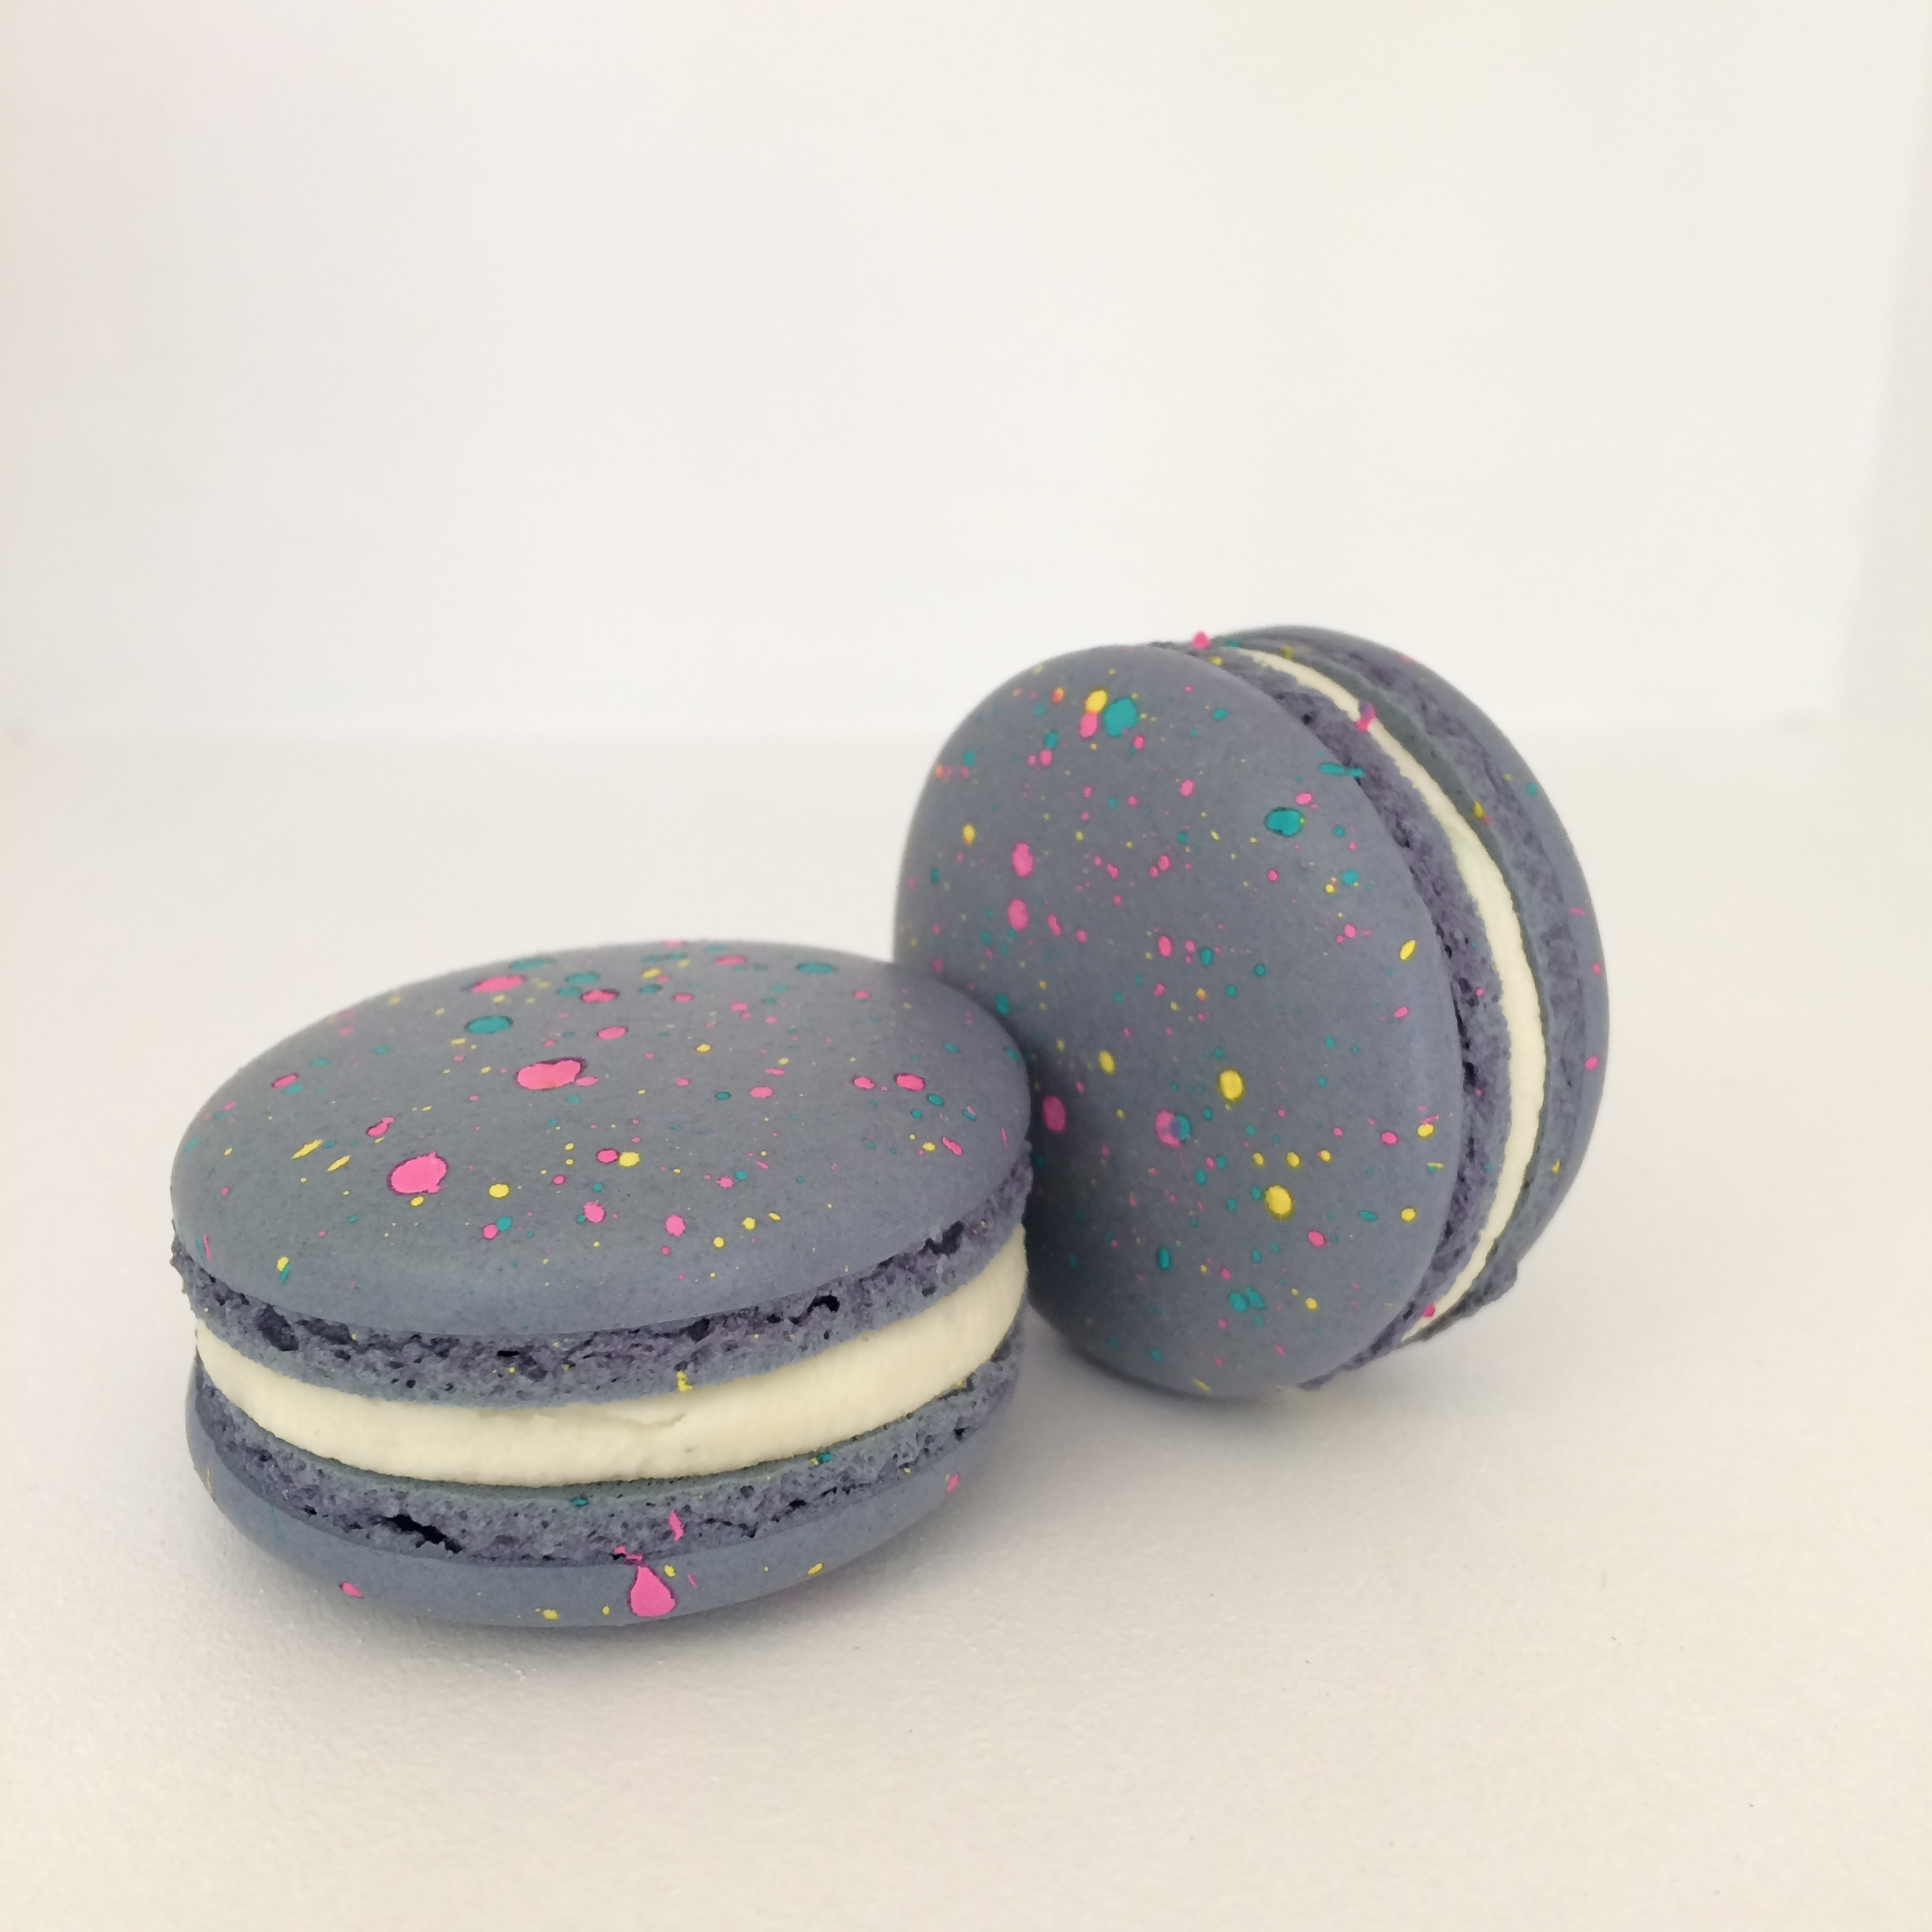 Pop rocks macarons by Seed Confections